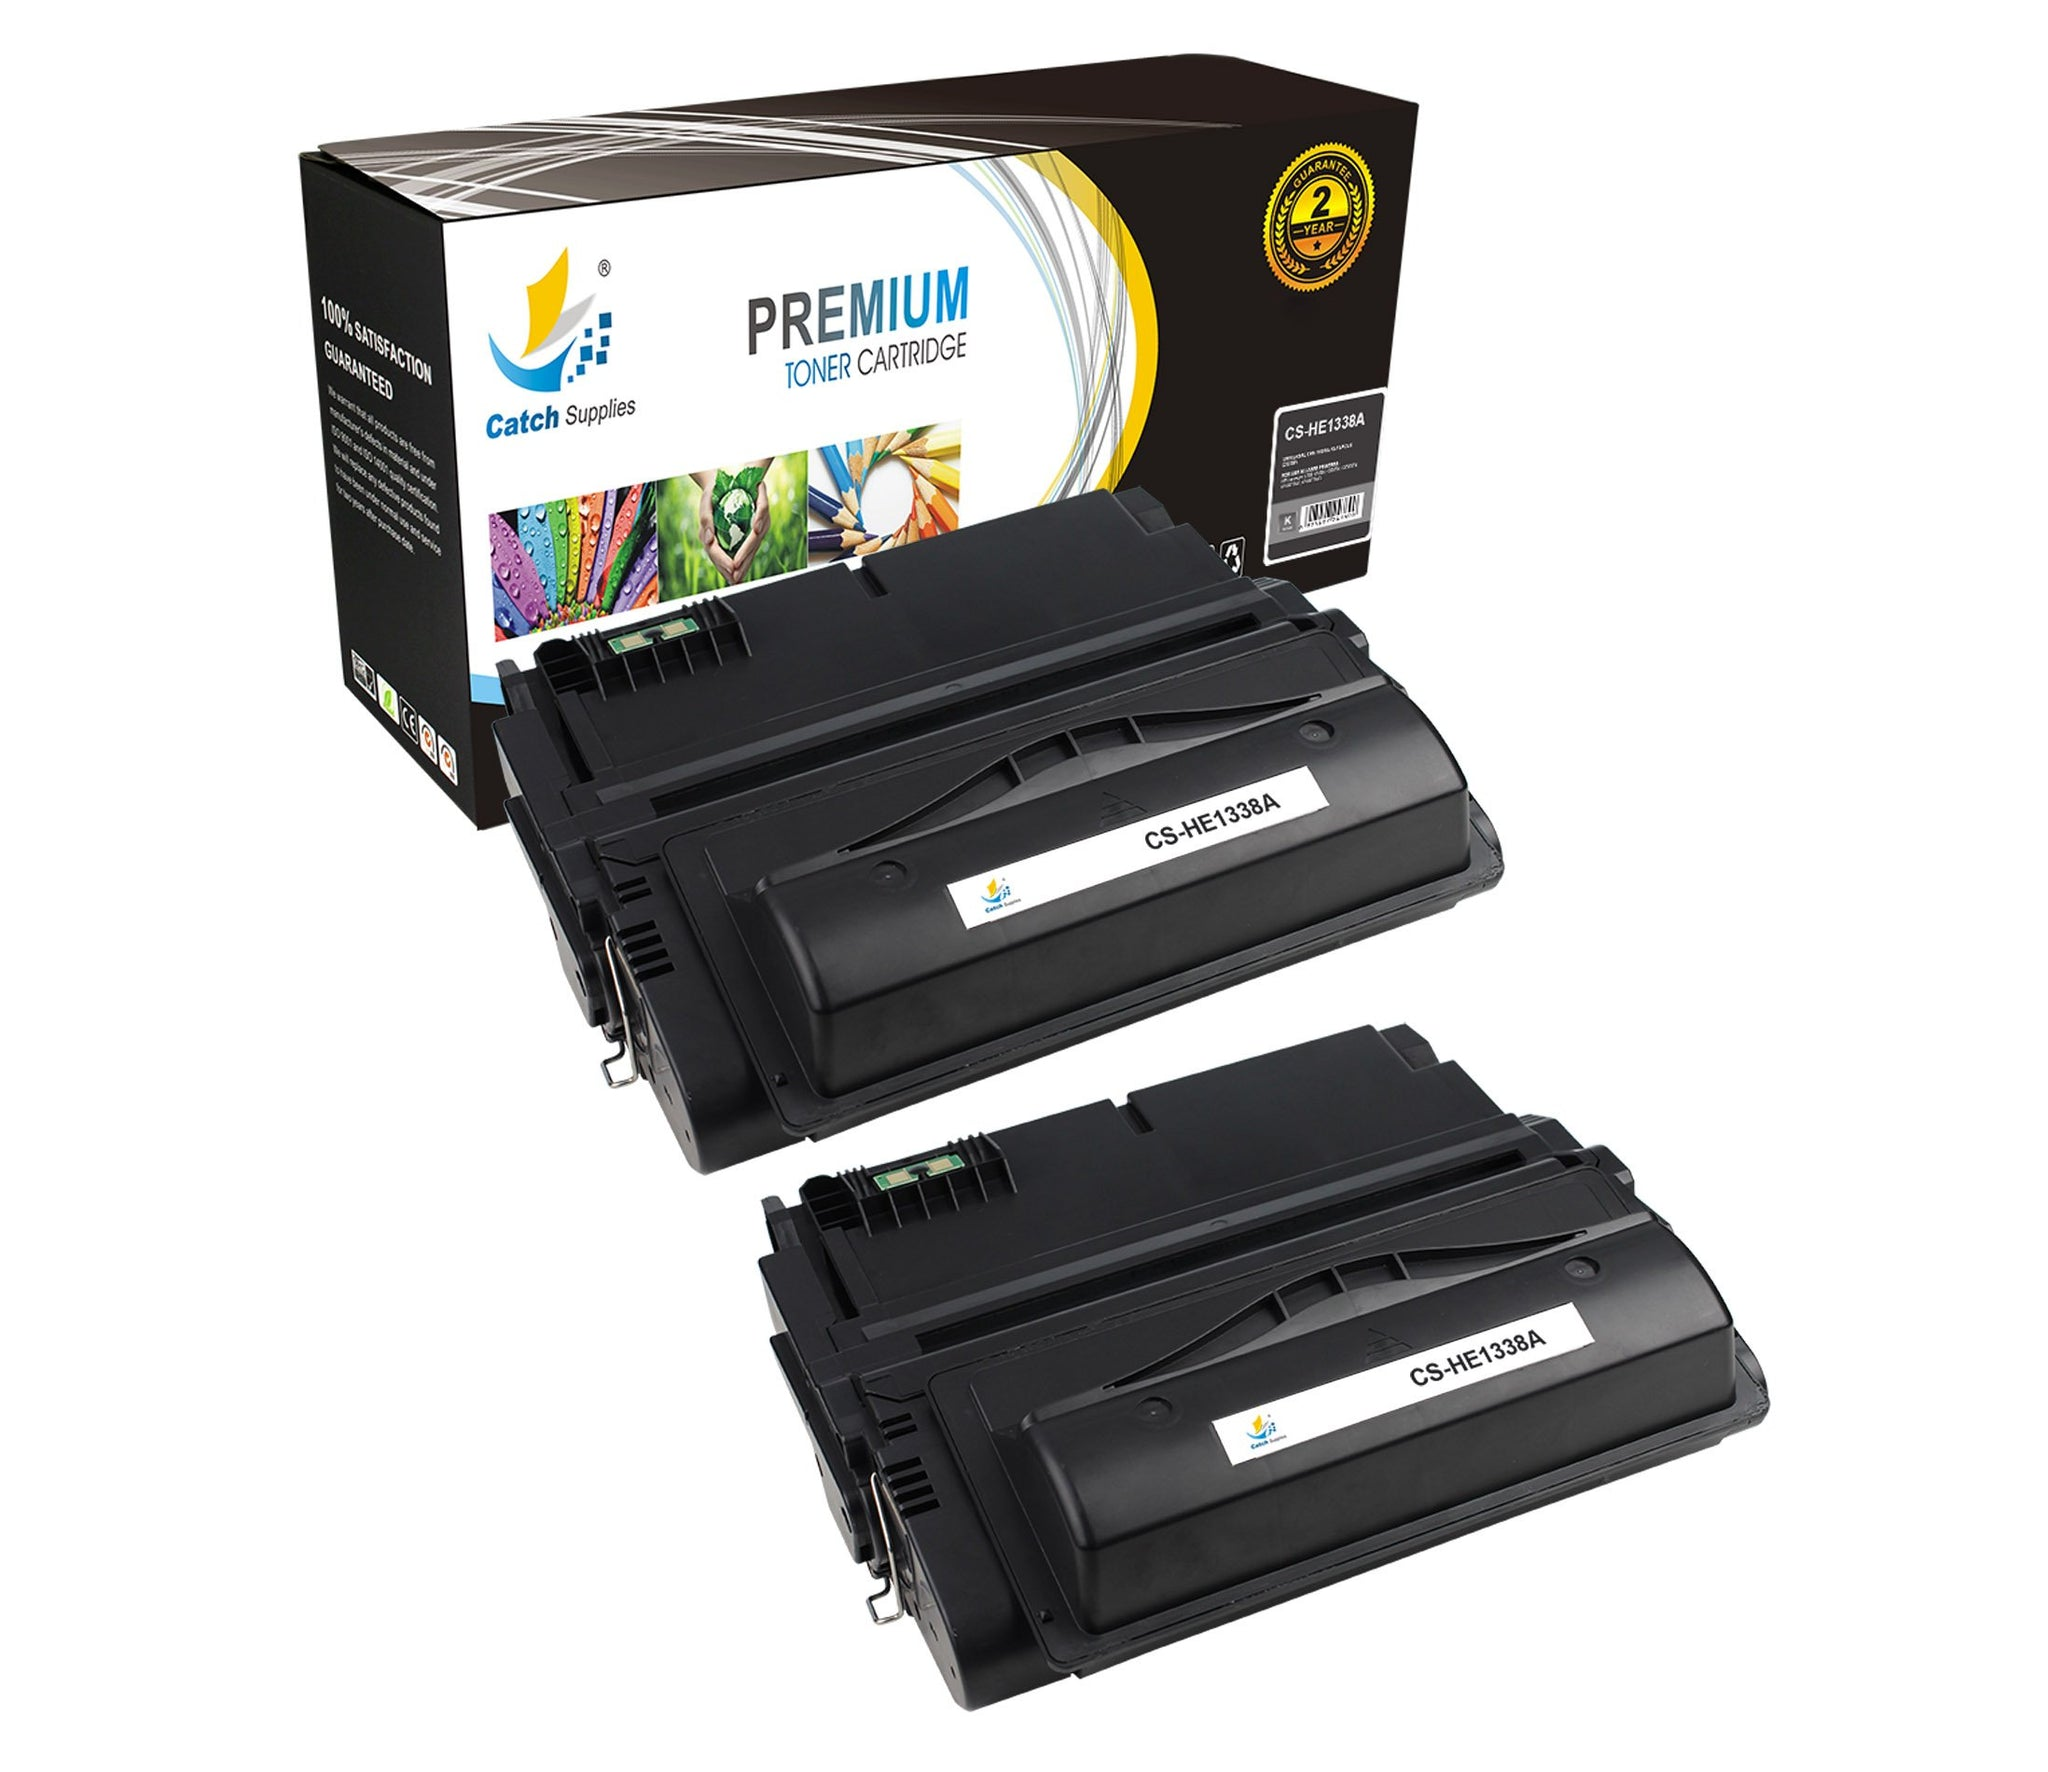 Sale 2pk Hp Q1338a Black Toner Cartridge Catch Supplies 1 2 Pk Standard Replacement Yield Laser Printer Cartridges Two Pack